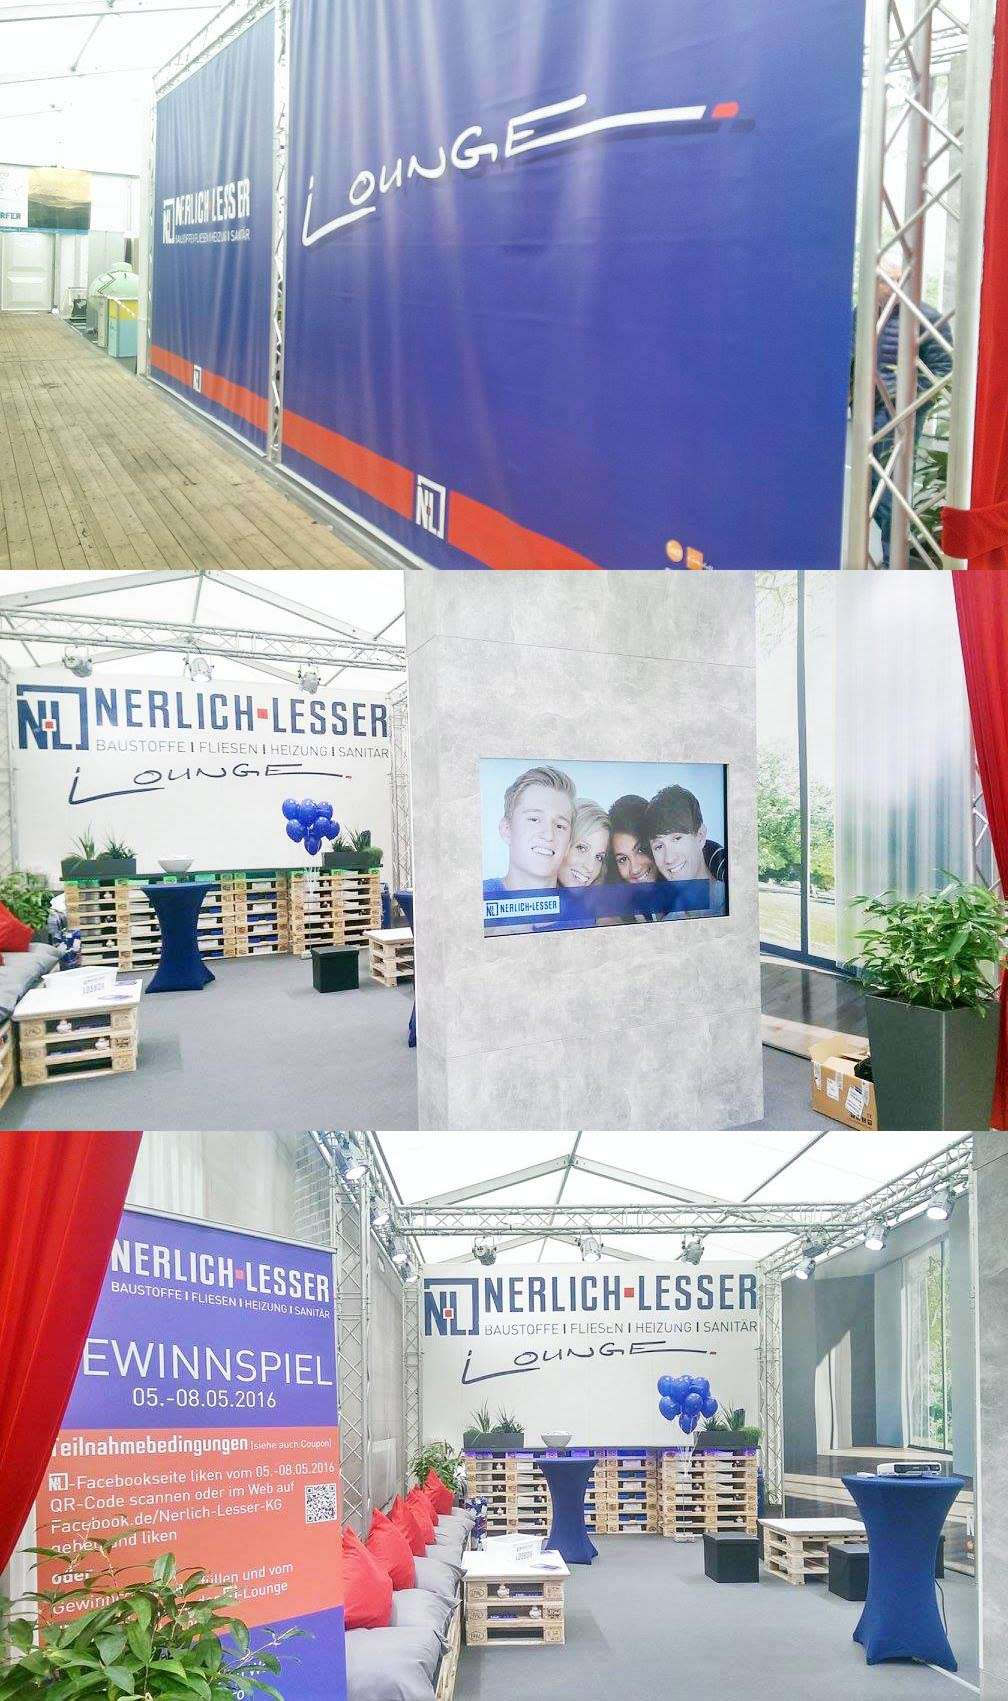 Nerlich & Lesser Messestand/Lounge DIWA-Messe